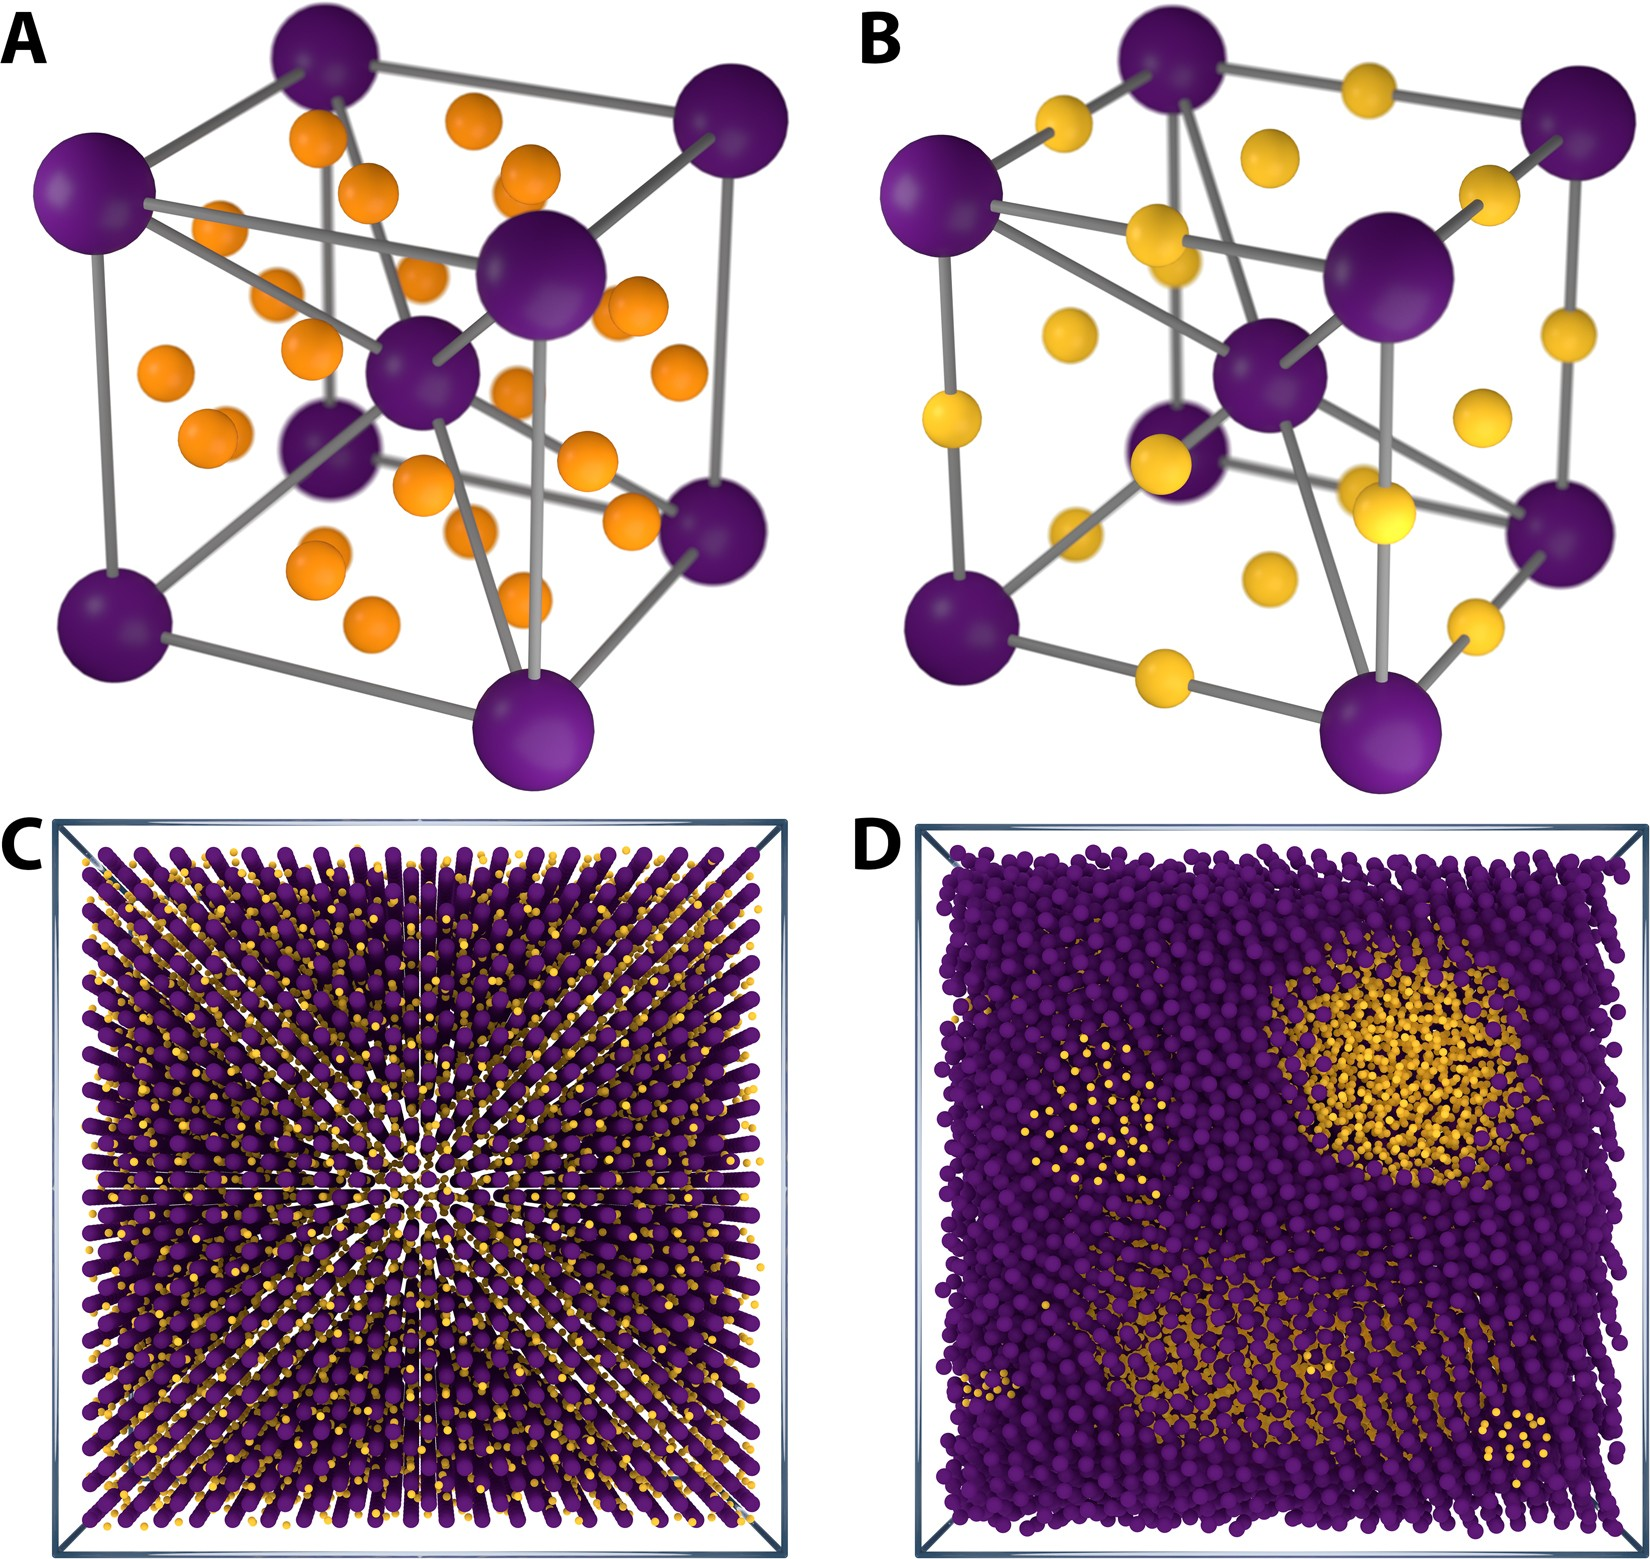 Doping colloidal bcc crystals — interstitial solids and meta-stable